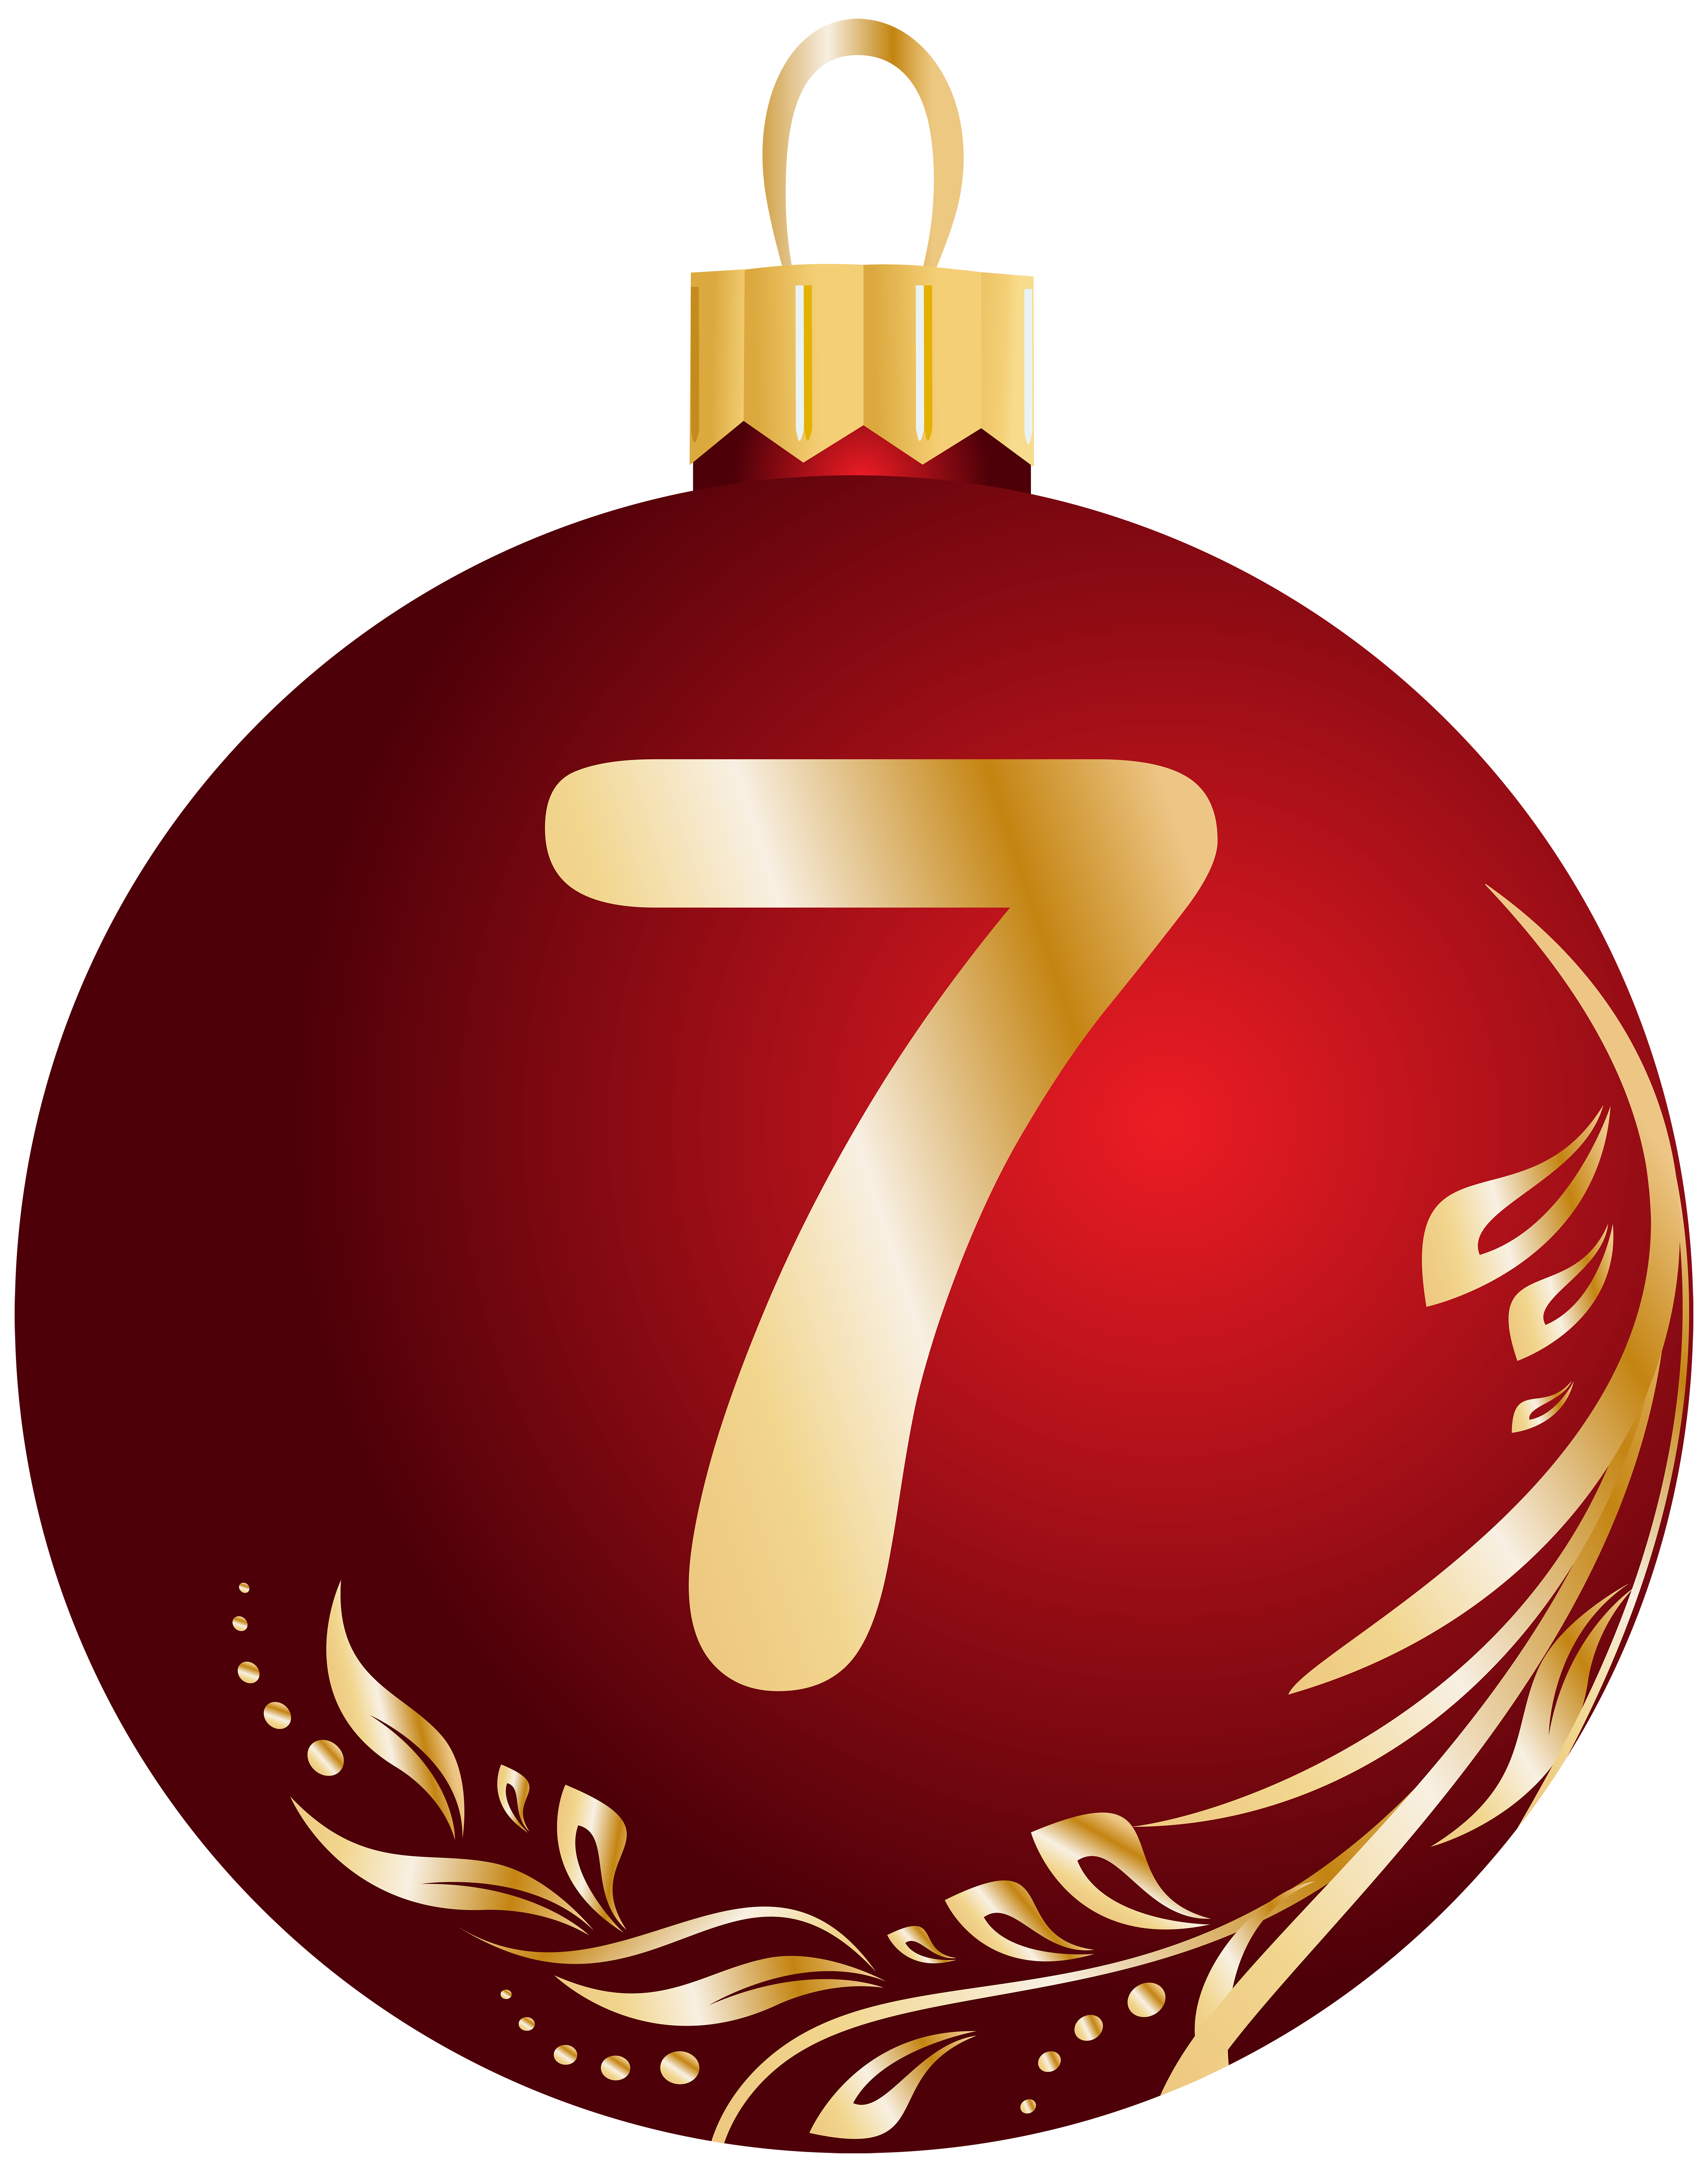 Seven ball clipart banner royalty free stock Christmas Ball Number Seven Transparent PNG Clip Art Image ... banner royalty free stock